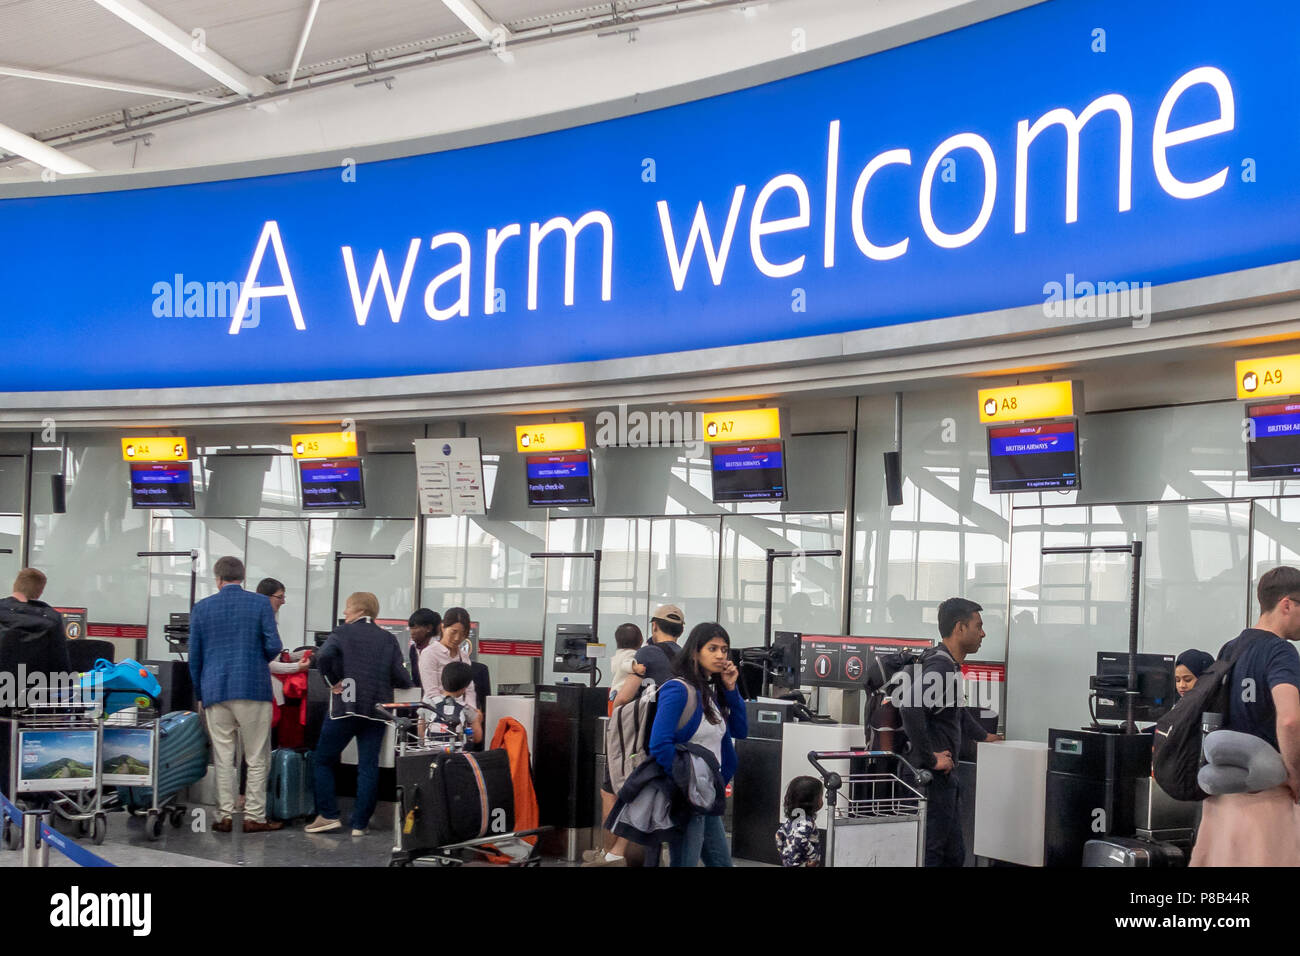 Passengers waiting at the British Airways check in desks at Heathrow Airport terminal 5 under a welcome sign - Stock Image